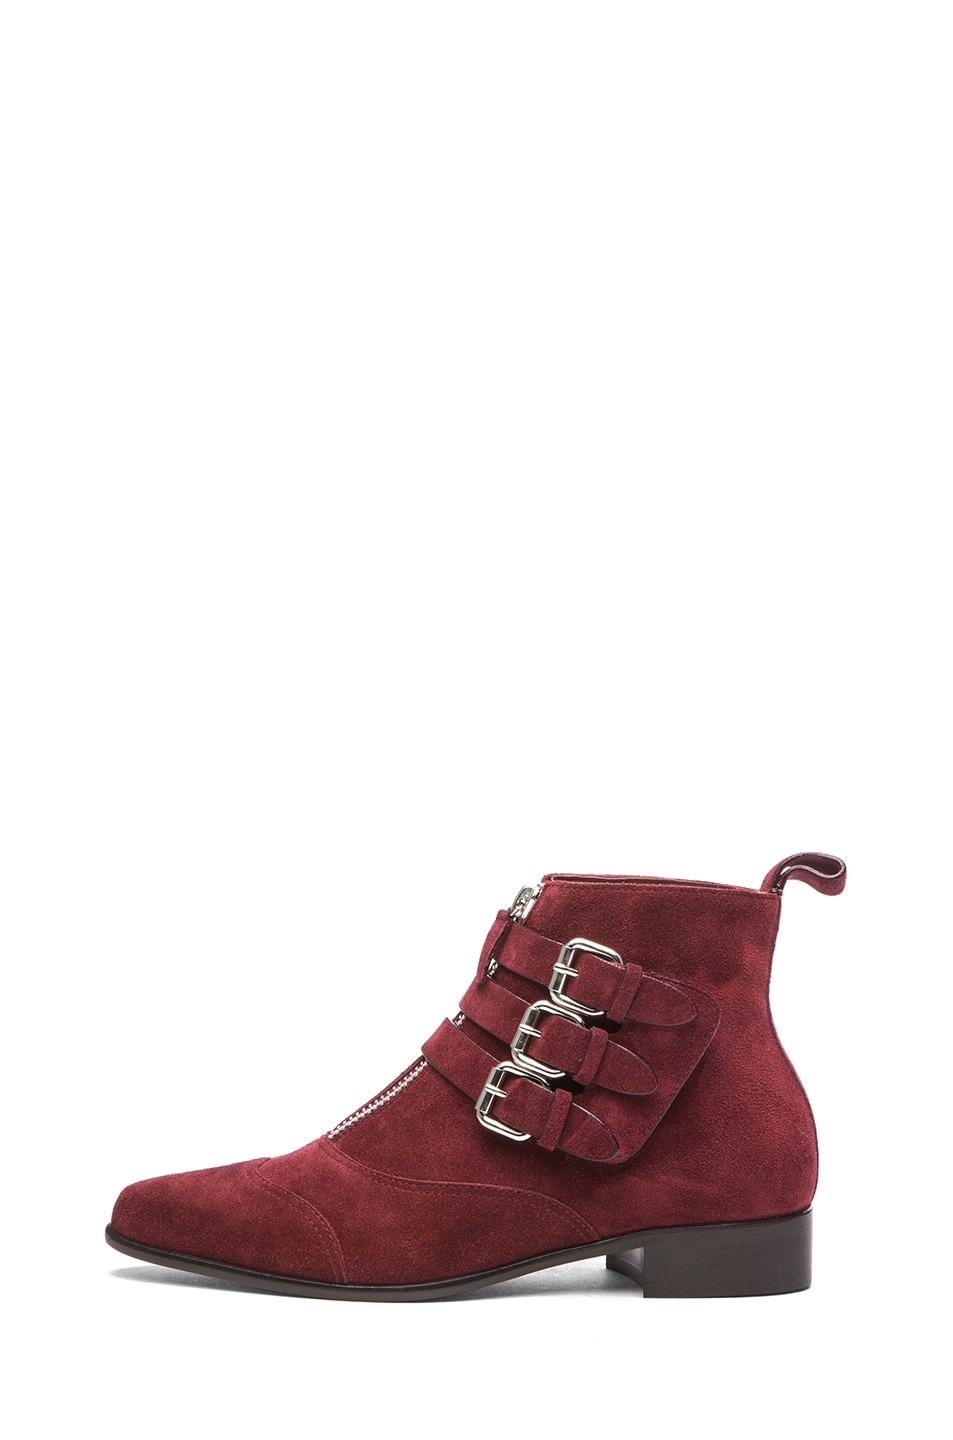 Image 1 of Tabitha Simmons Early Suede Booties with Buckles in Burgundy